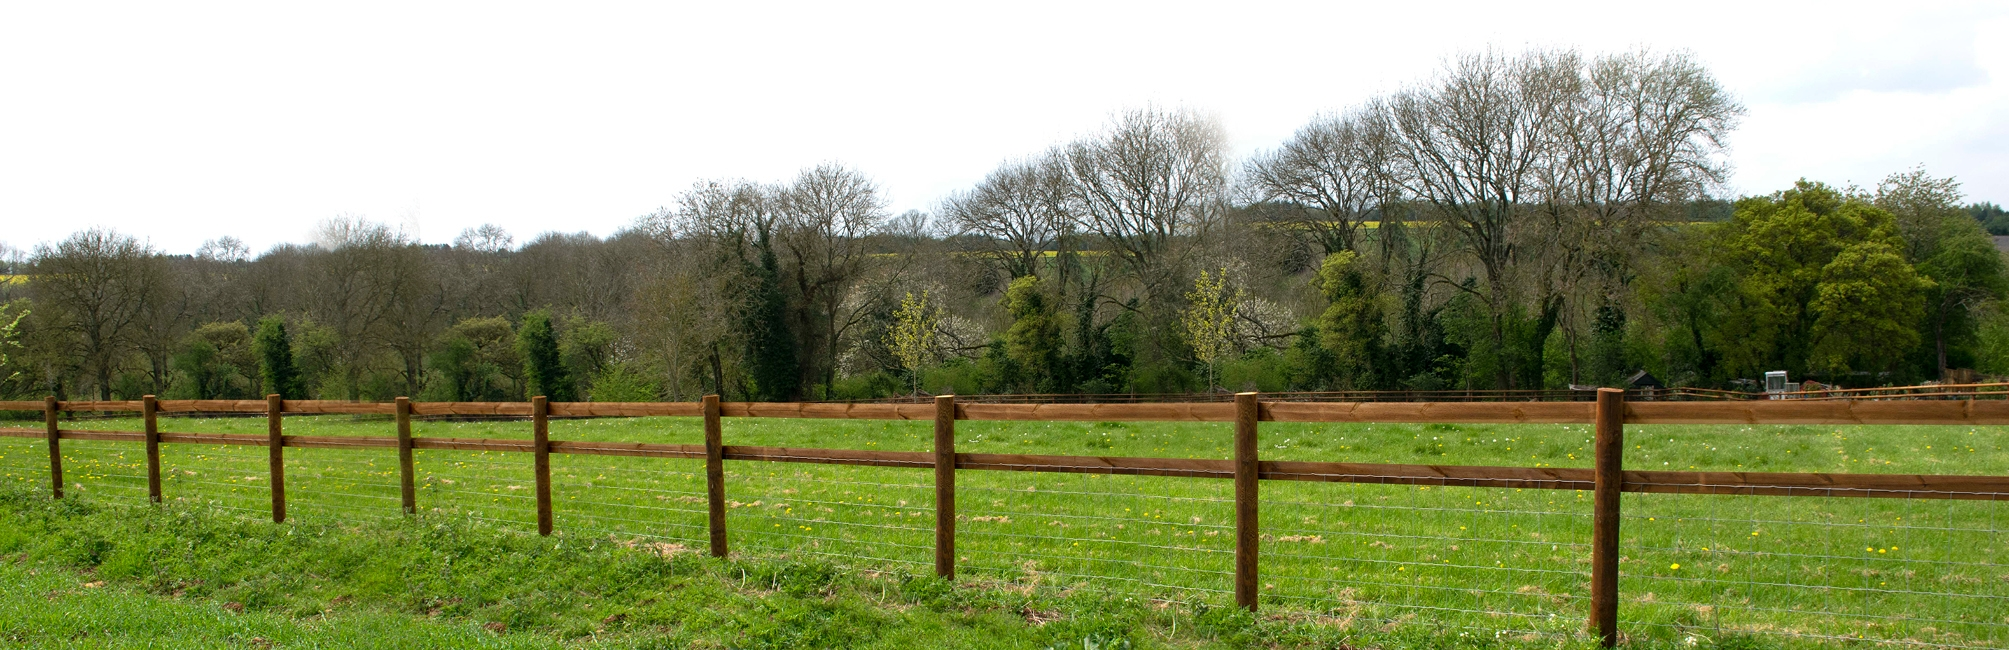 StowAg Fencing & Gates